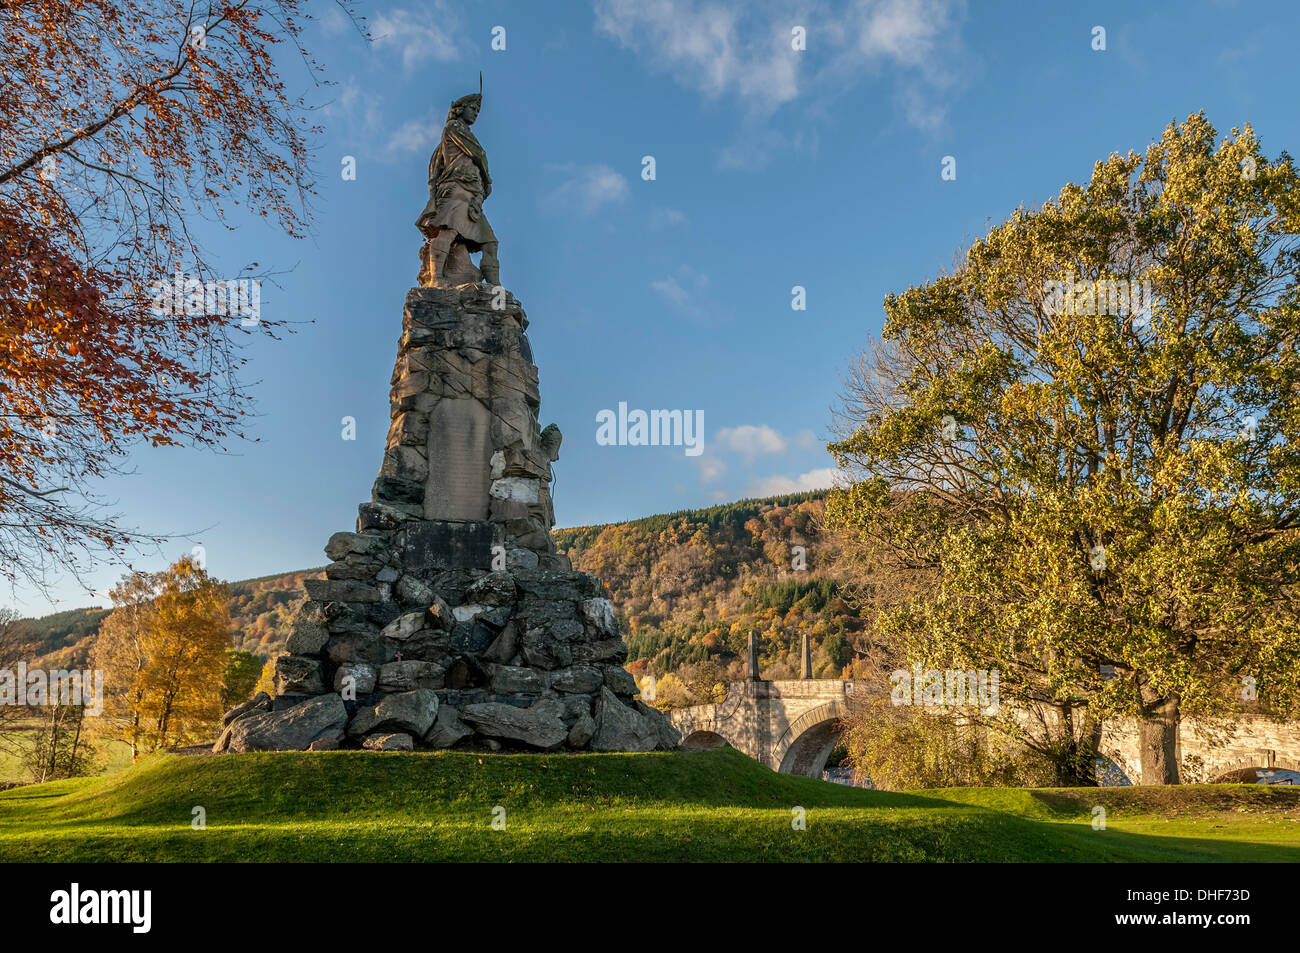 The Black Watch Memorial at Aberfeldy in Perthshire. - Stock Image